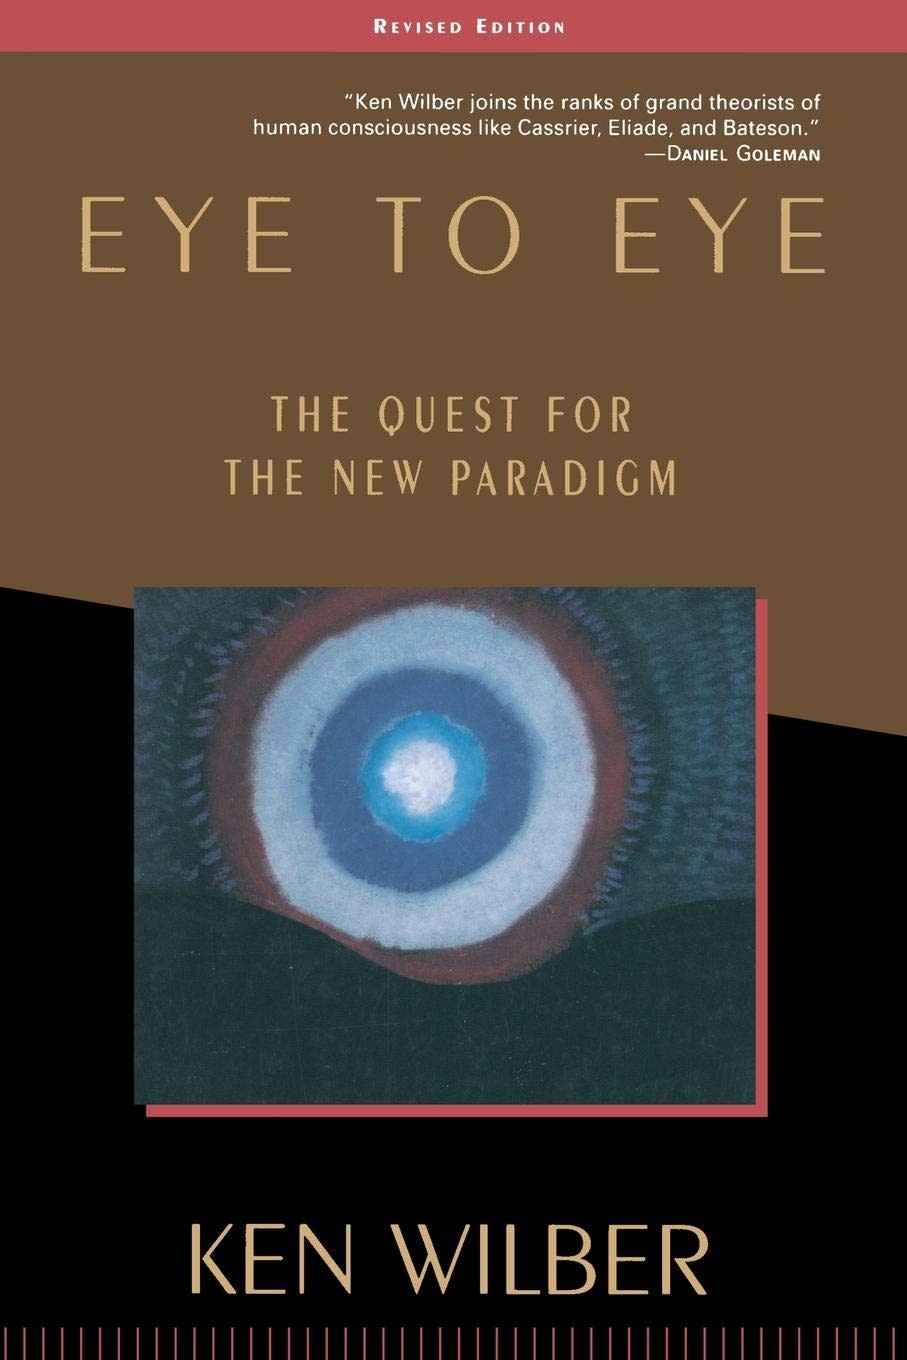 Eye to Eye the Quest for the New Paradigm